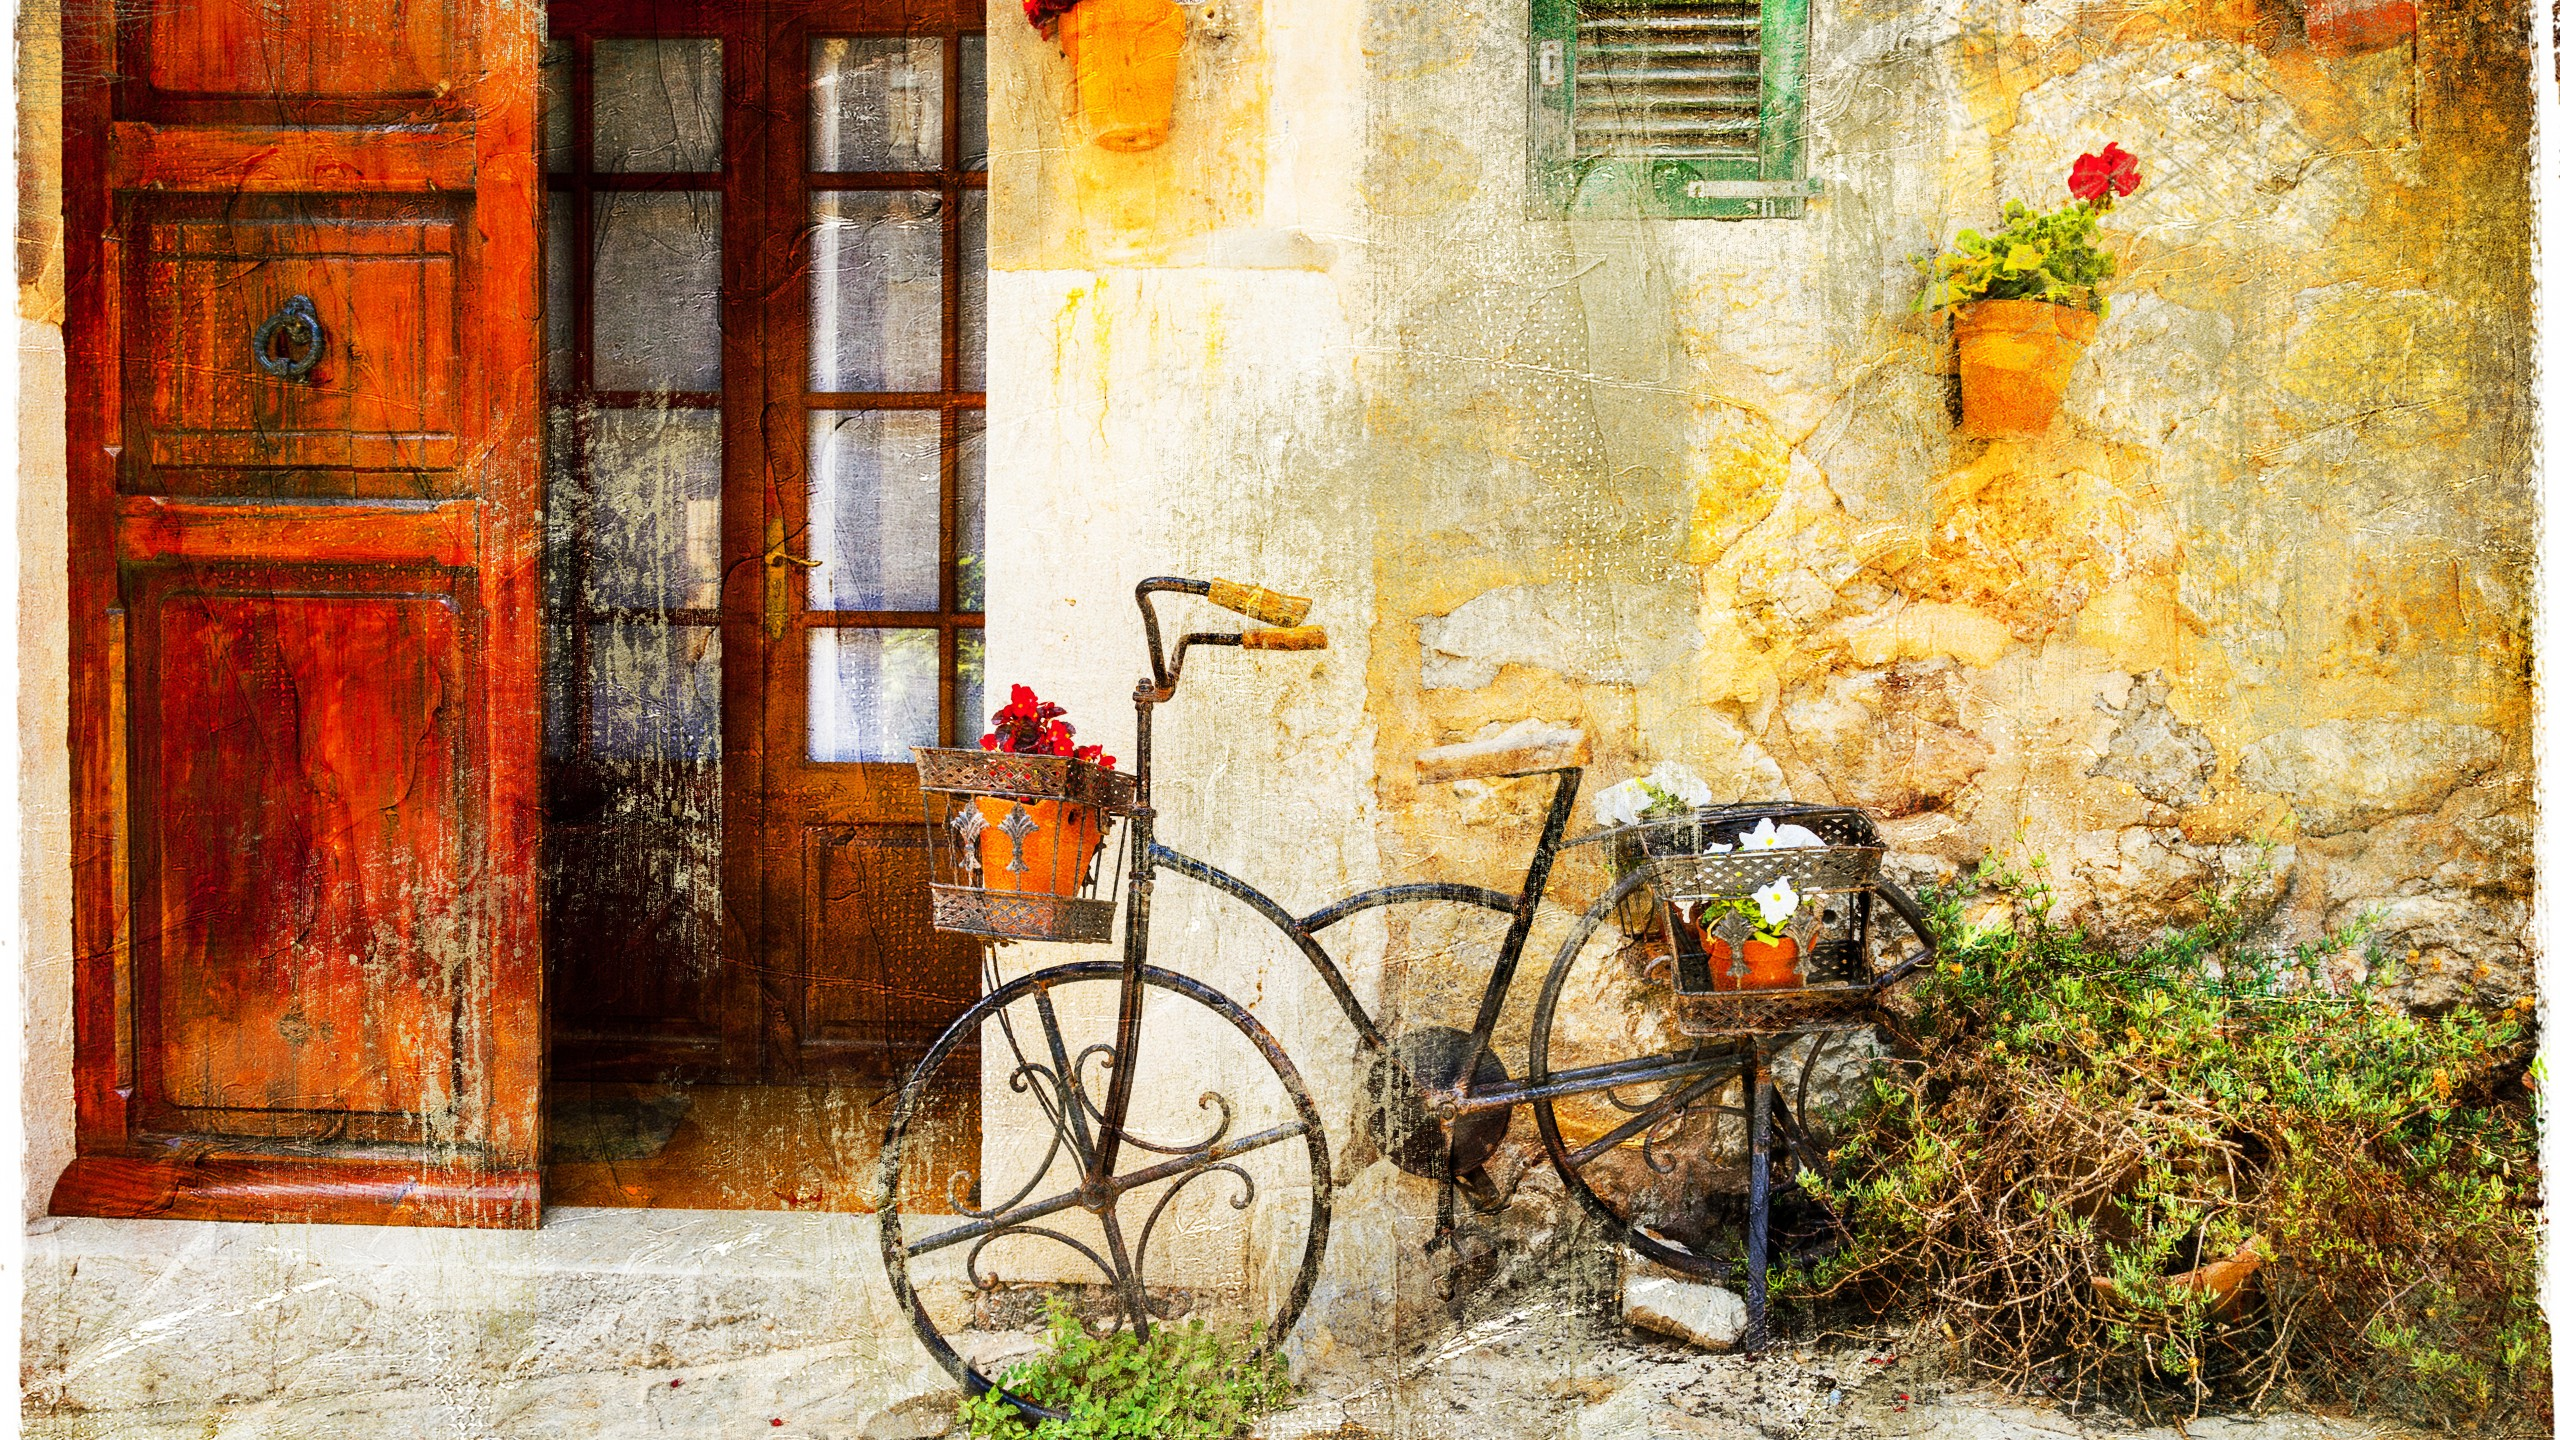 Fall Abstract Wallpaper Wallpaper Bicycle Vintage Old House 8k Art 18730